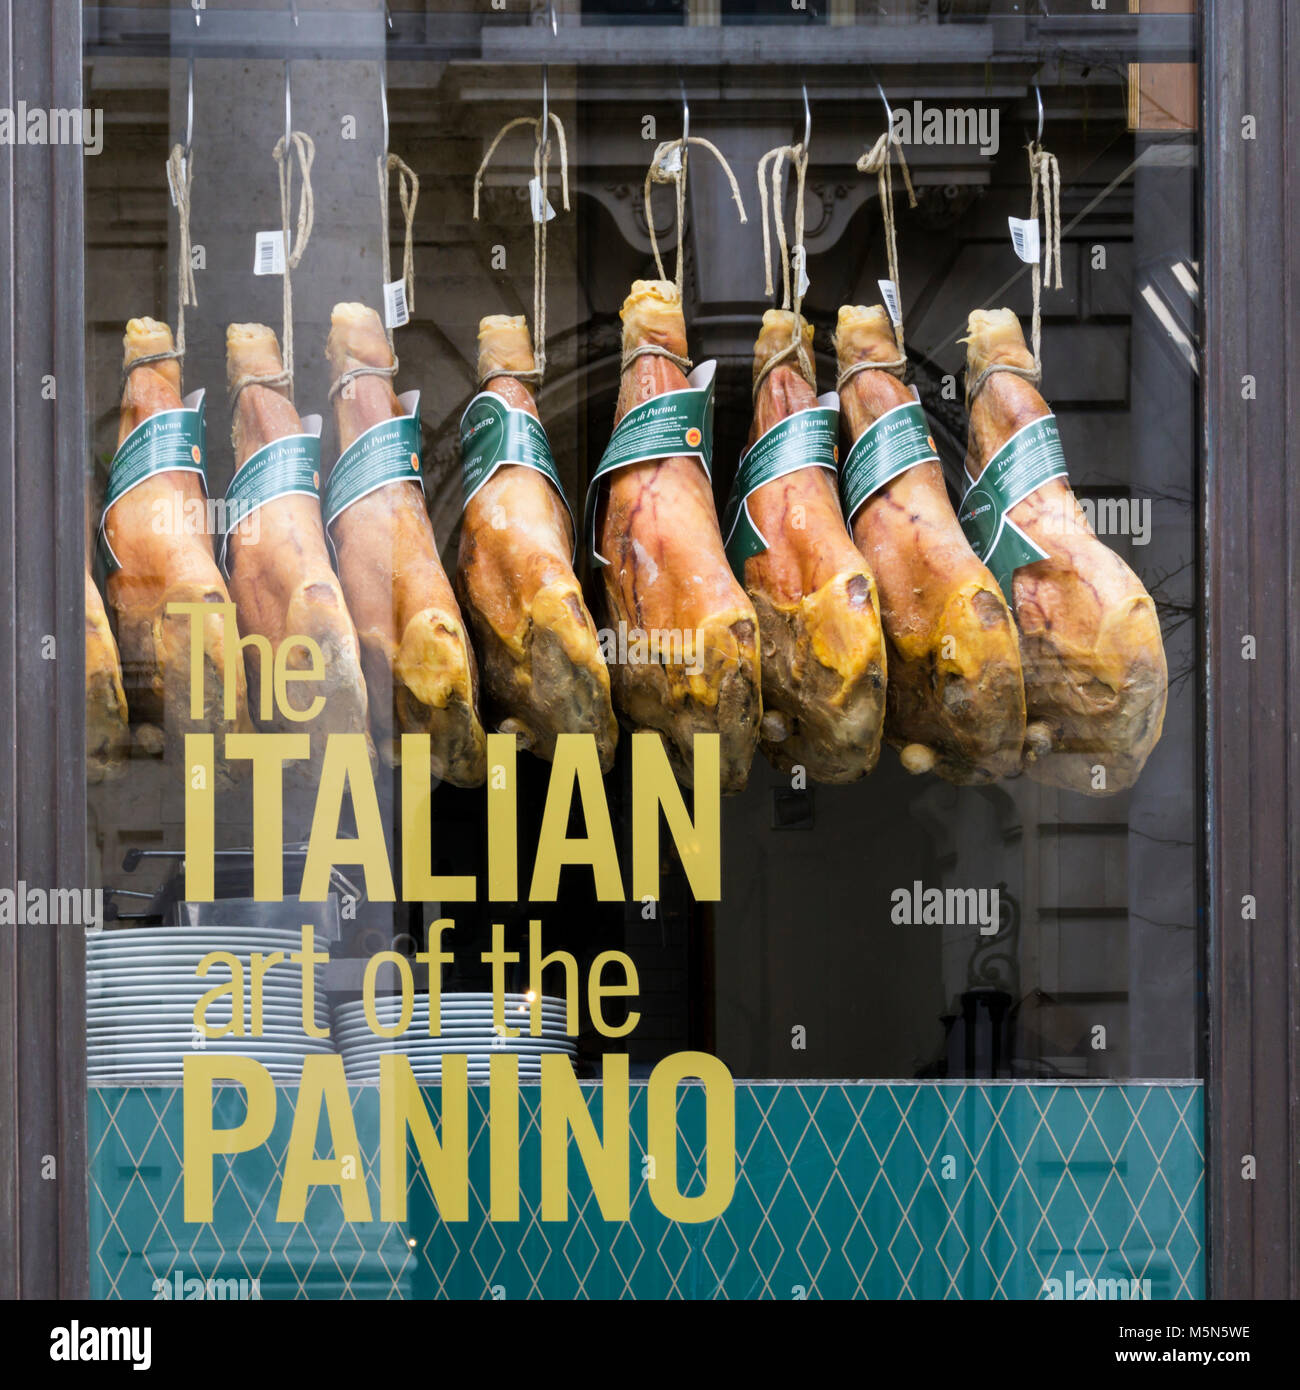 Parma hams hanging in the window of Panino Giusto in Royal Exchange Buildings in the City of London. - Stock Image